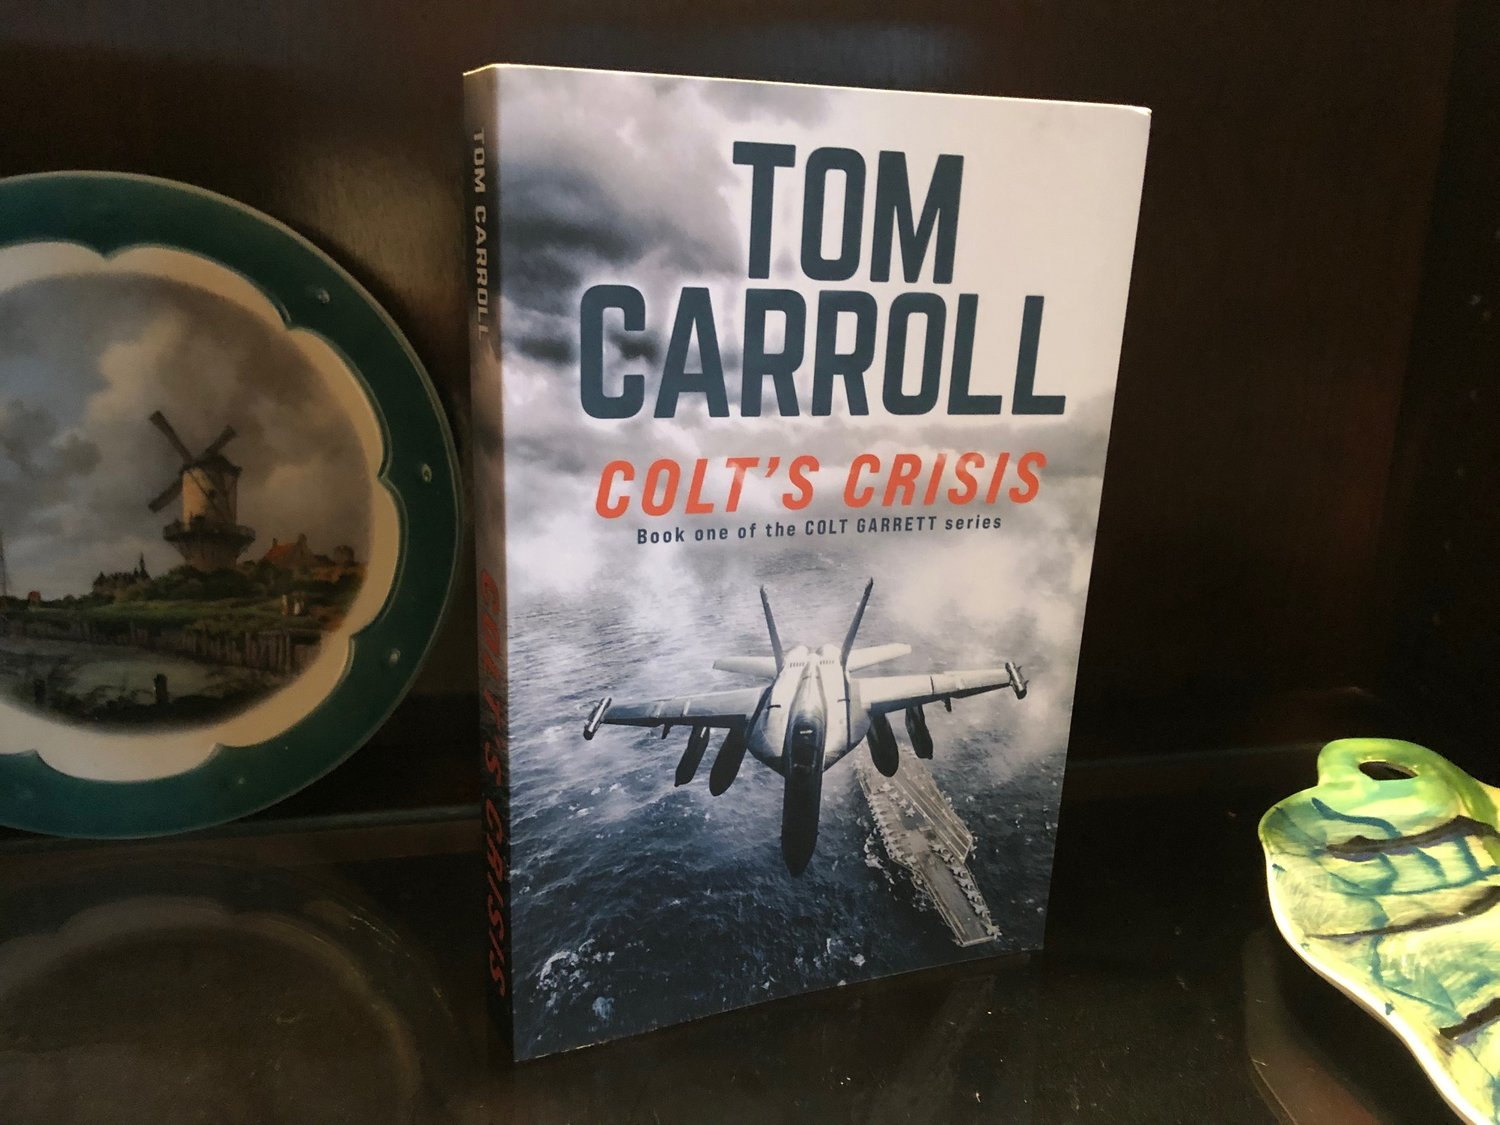 Colt's Crisis is Tom Carroll's first novel, published in Nov. 2020.